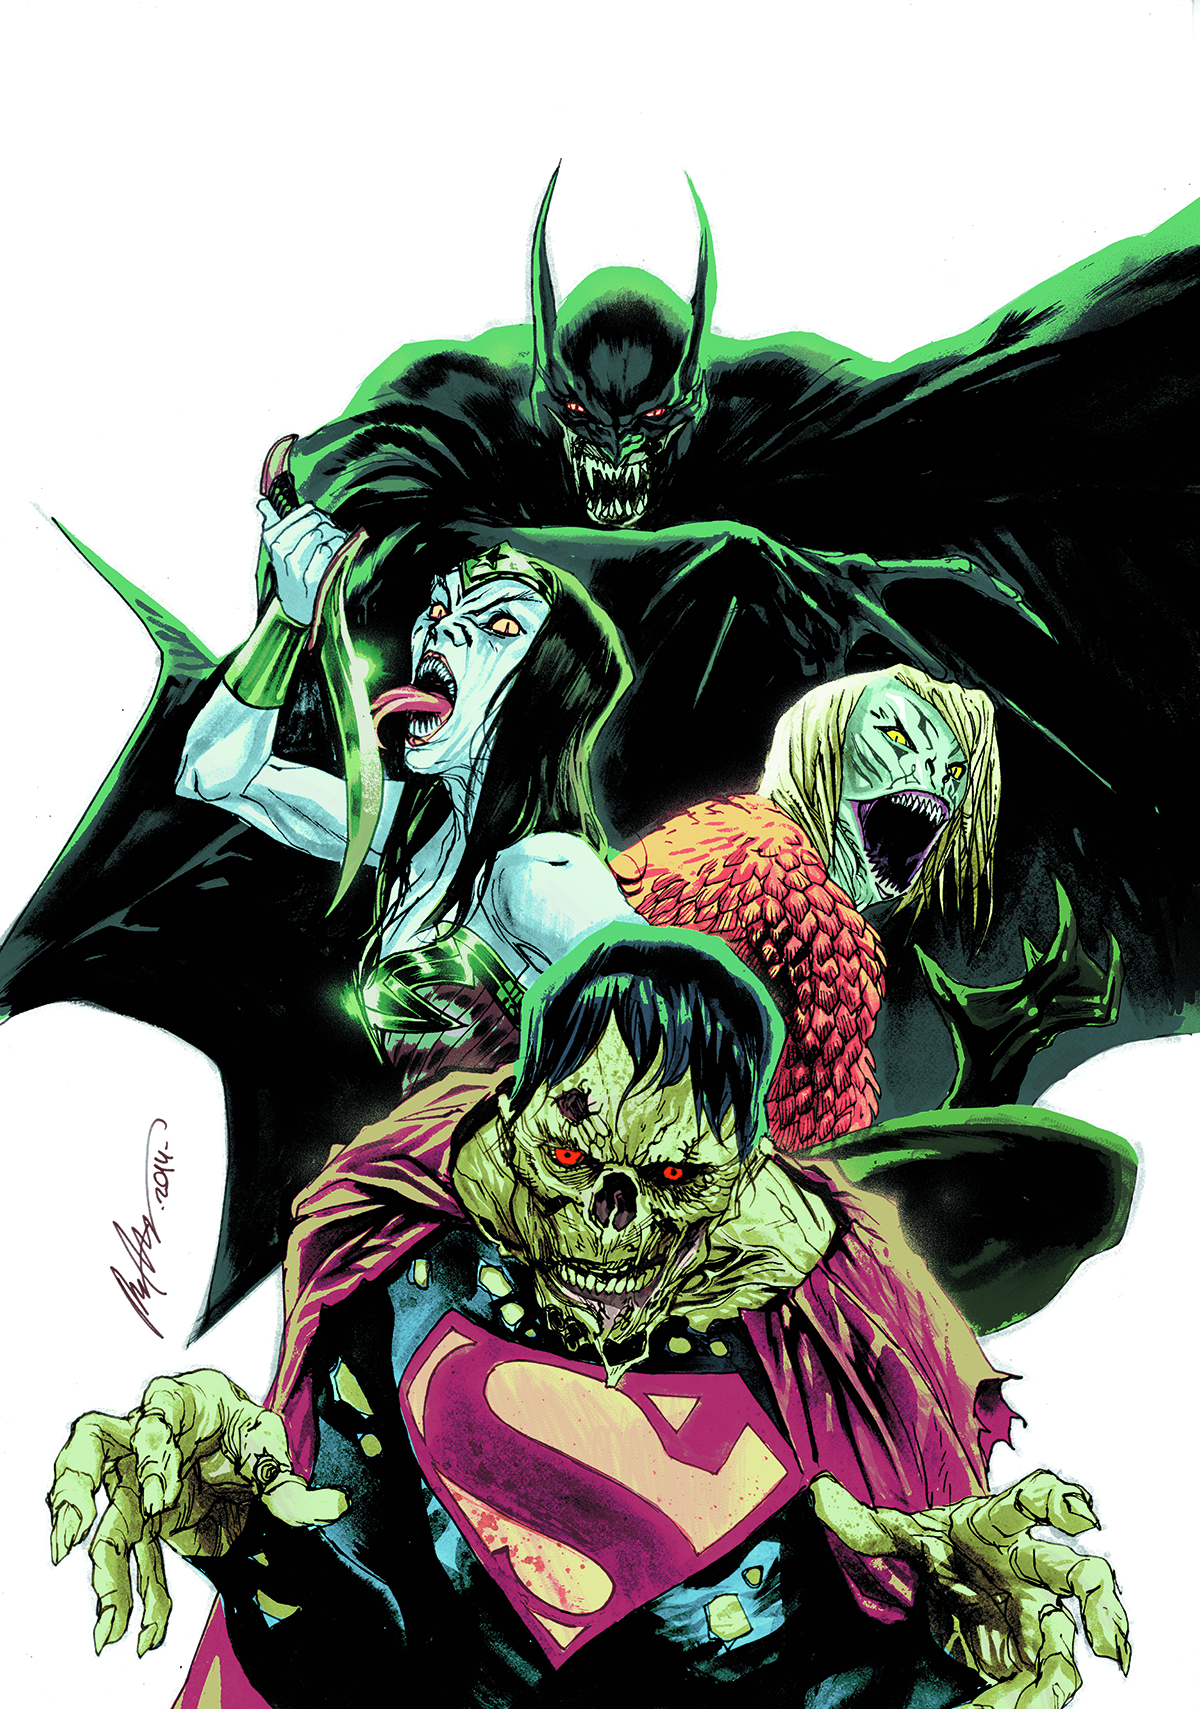 JUSTICE LEAGUE #35 MONSTERS VAR ED